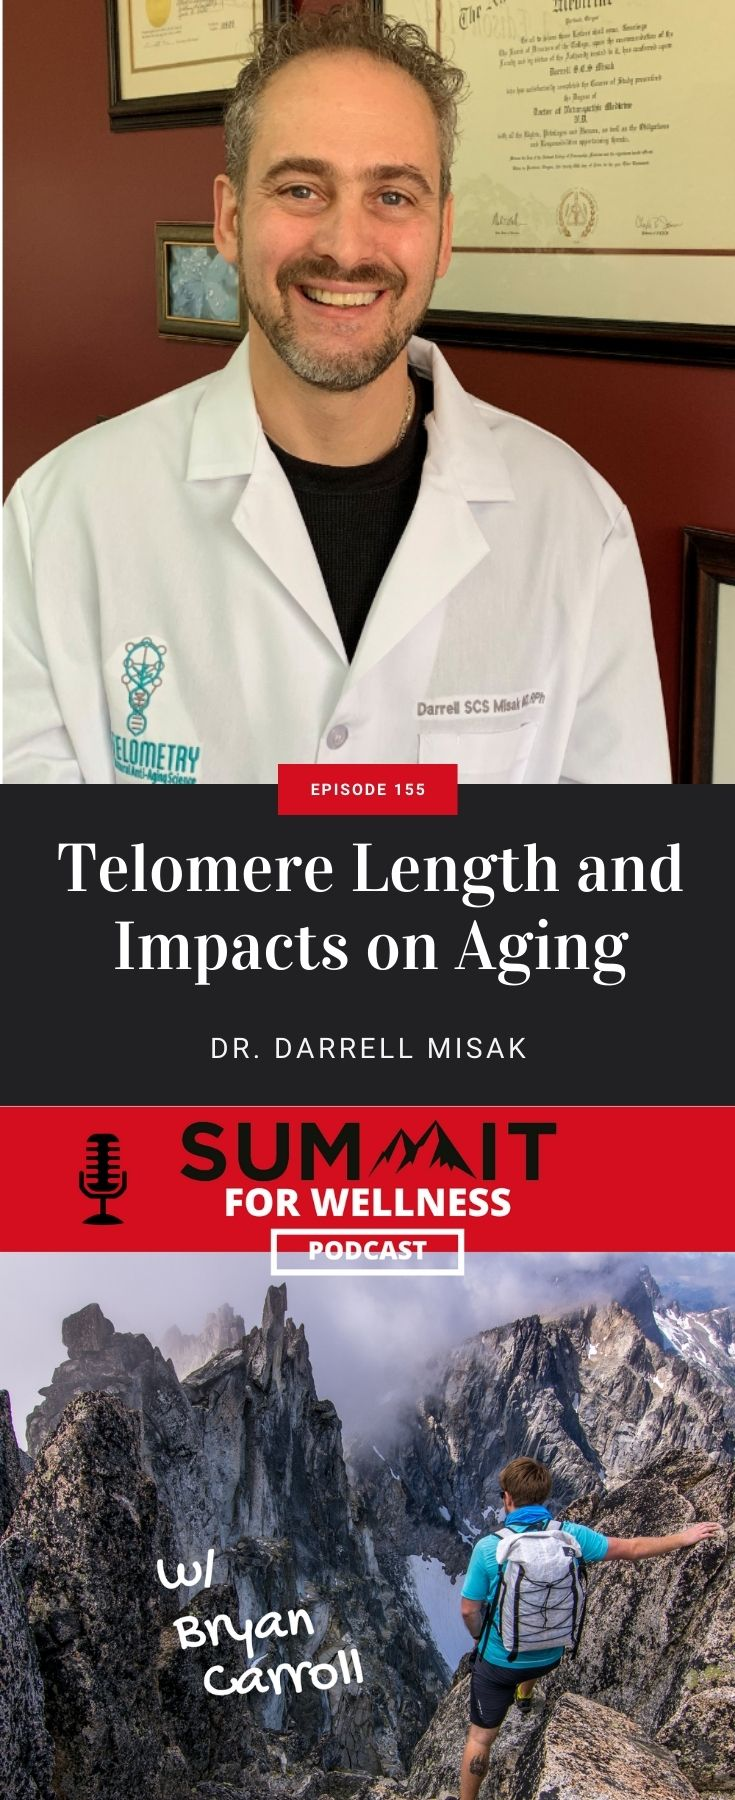 Dr. Darrell Misak teaches about the importance of telomeres and how it impacts aging.